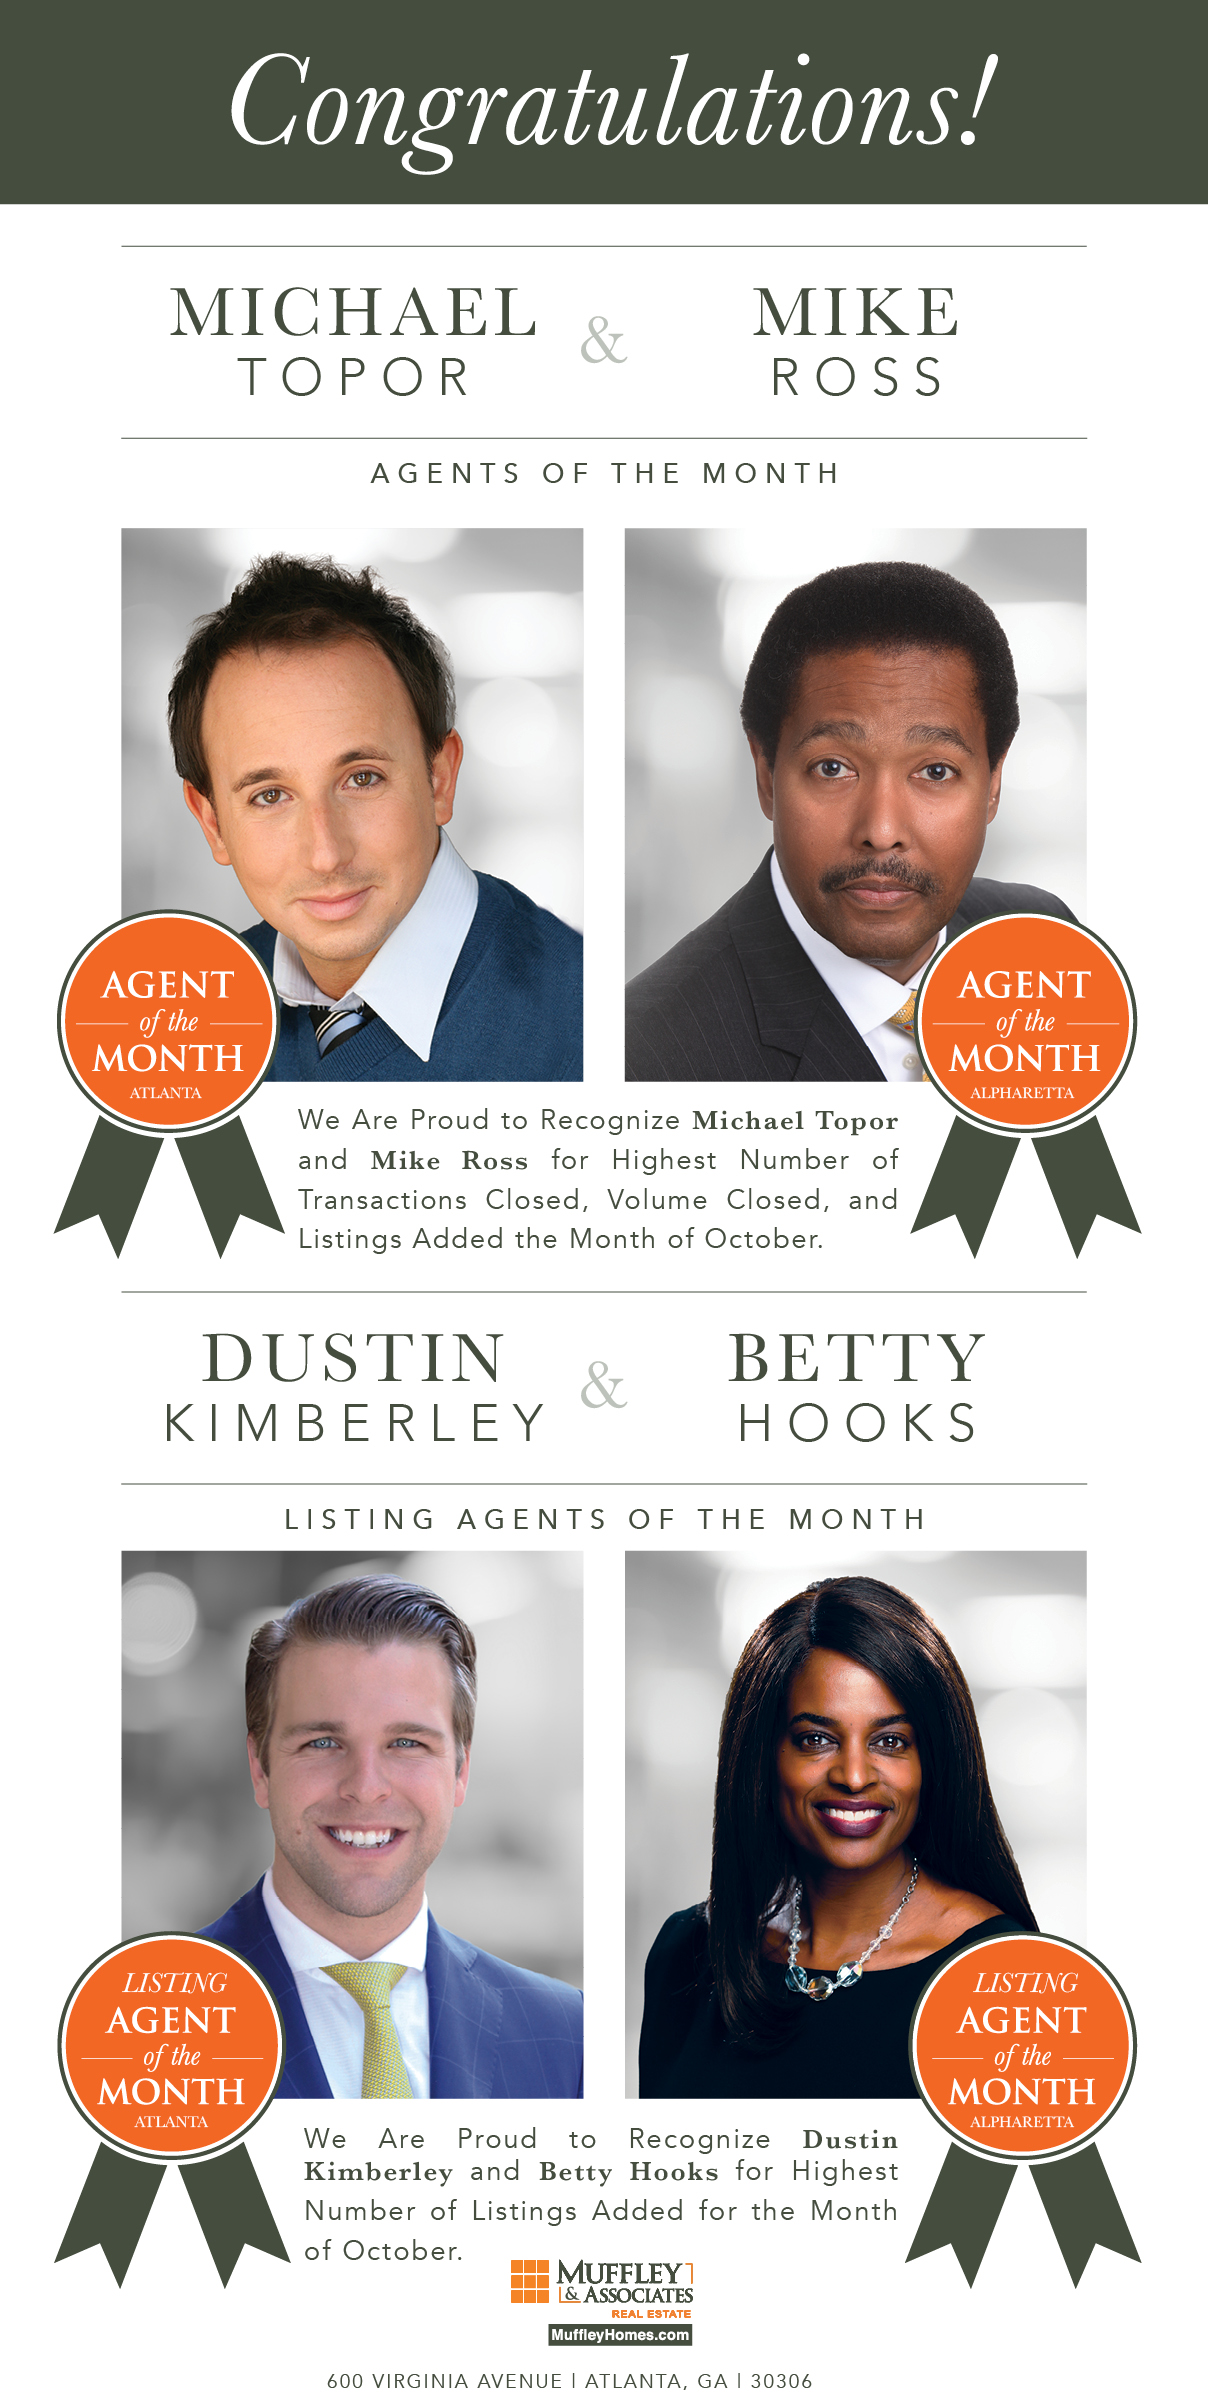 Muffley & Associates Agents of the Month, October 2017